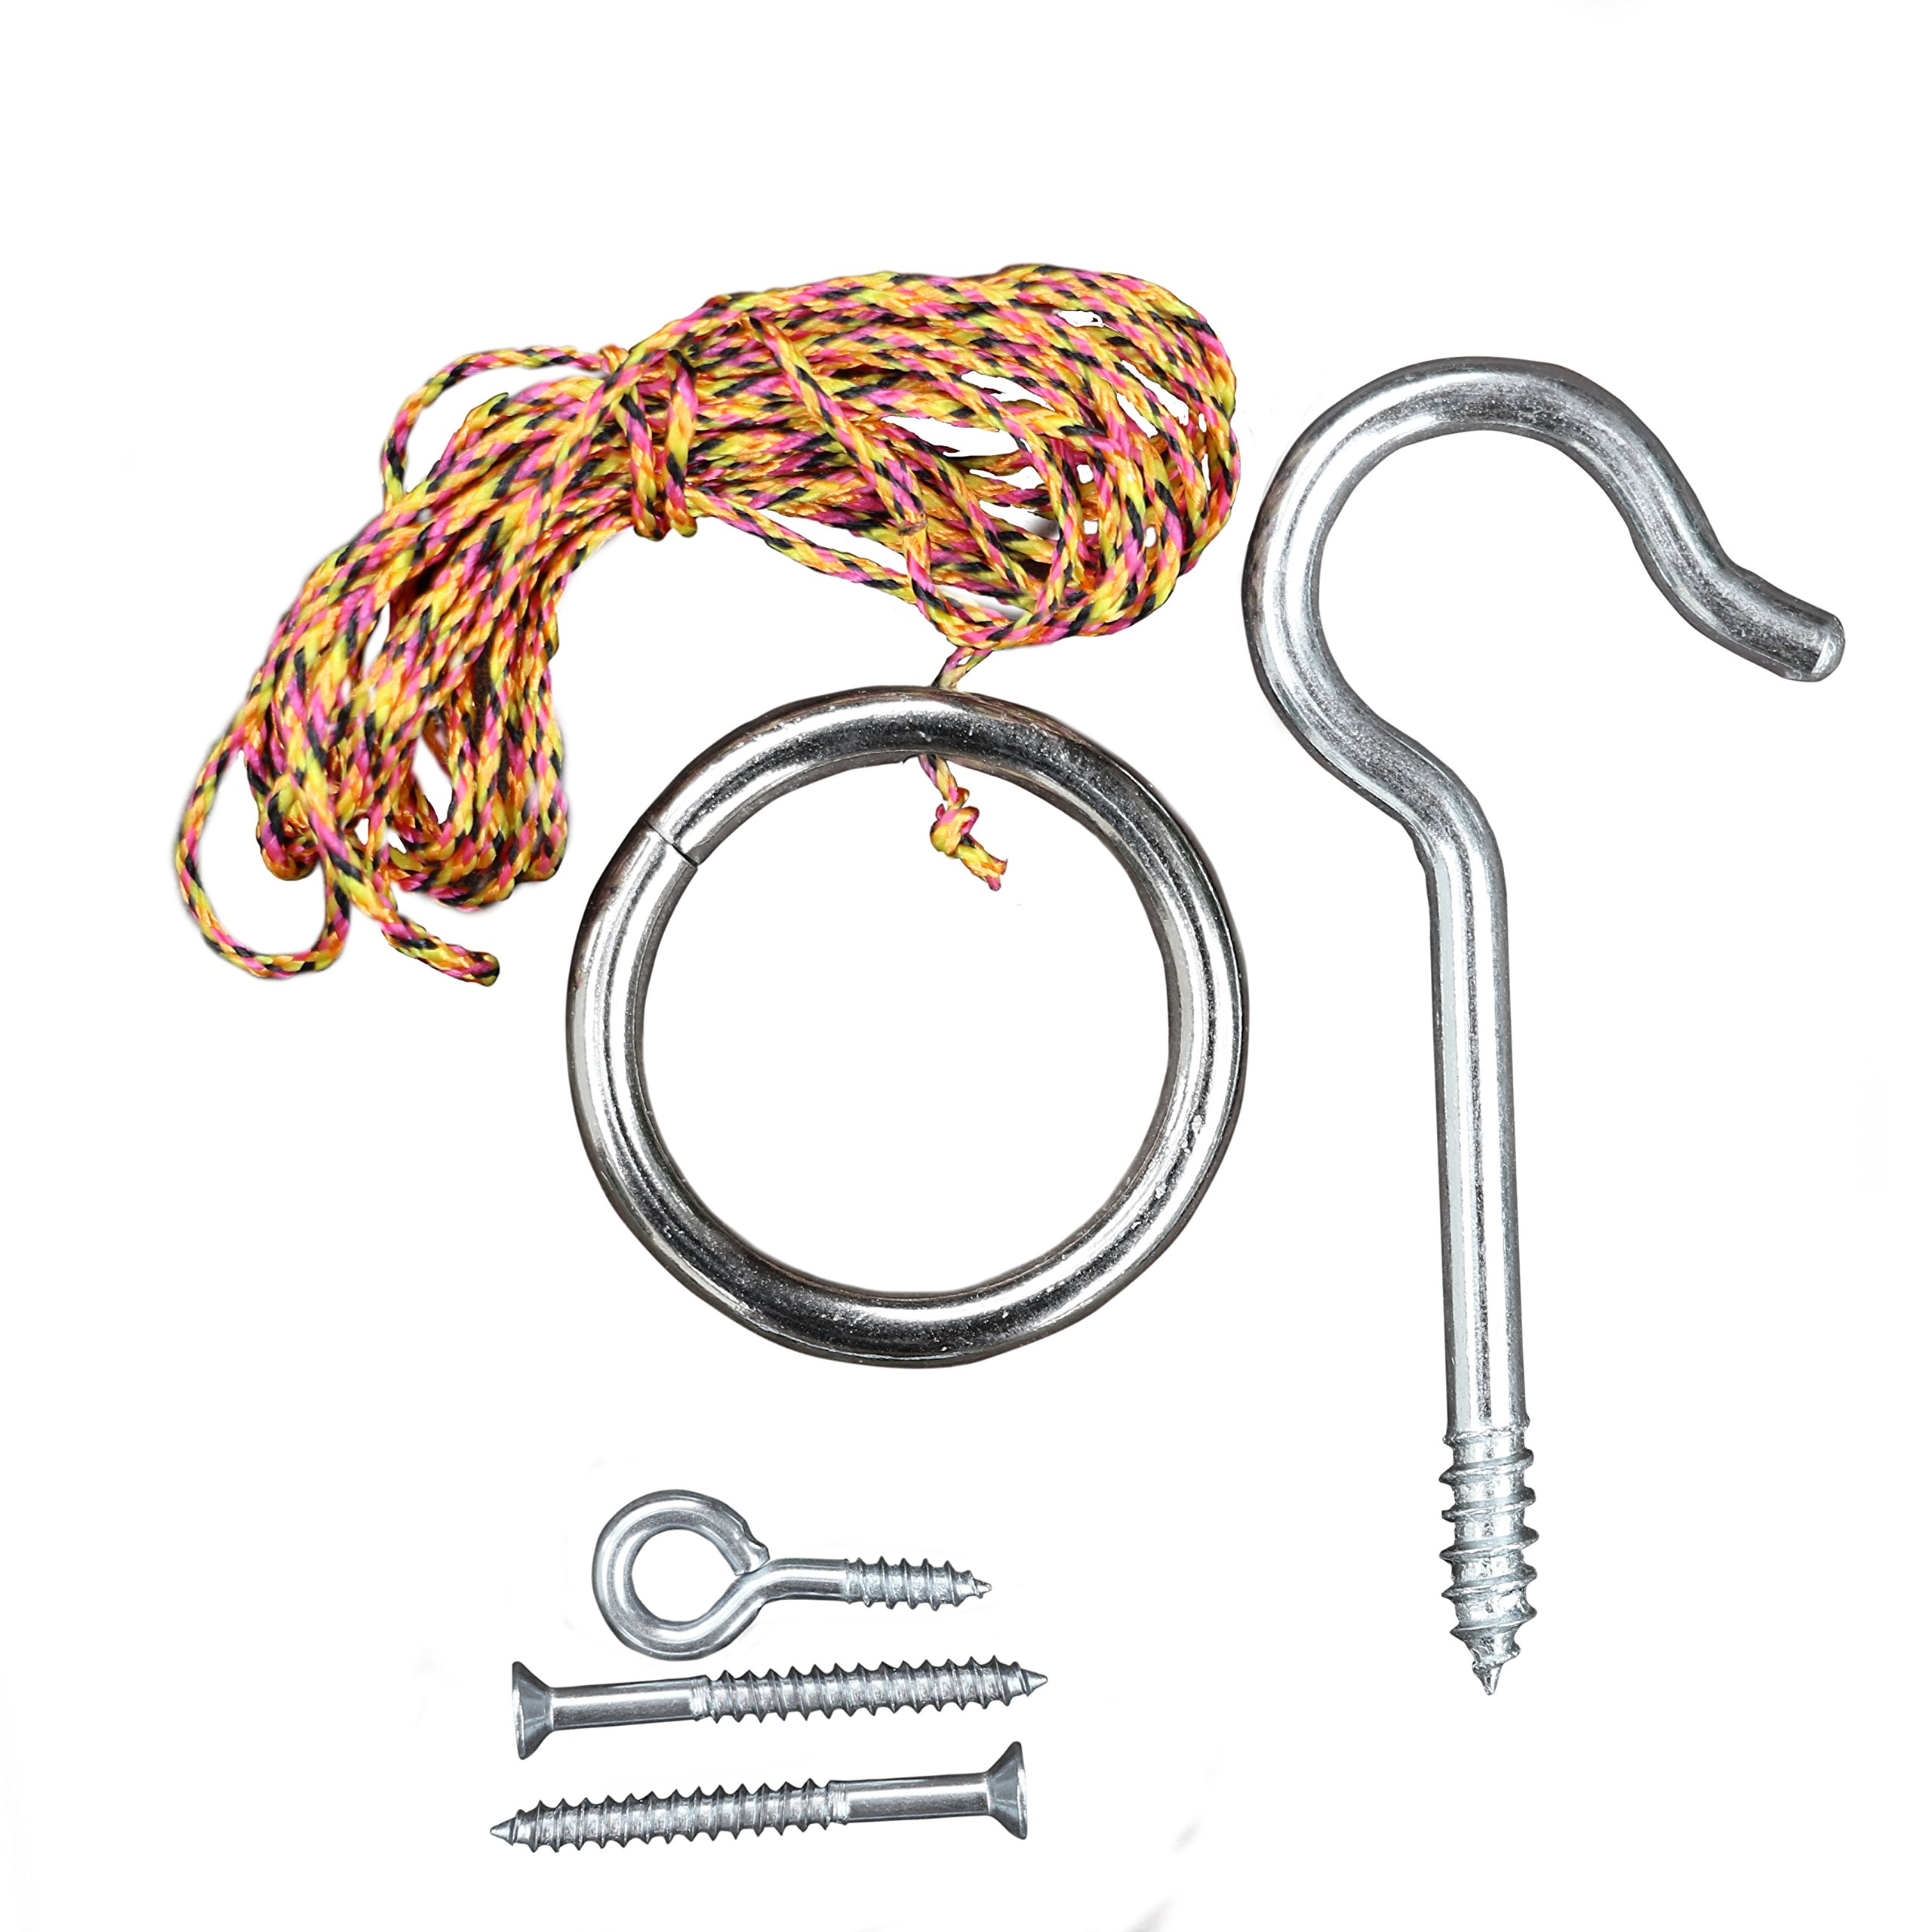 Tiki Toss Original Hook and Ring Game Essentials- Includes Hook, Ring, Mounting Screws, and Thread by